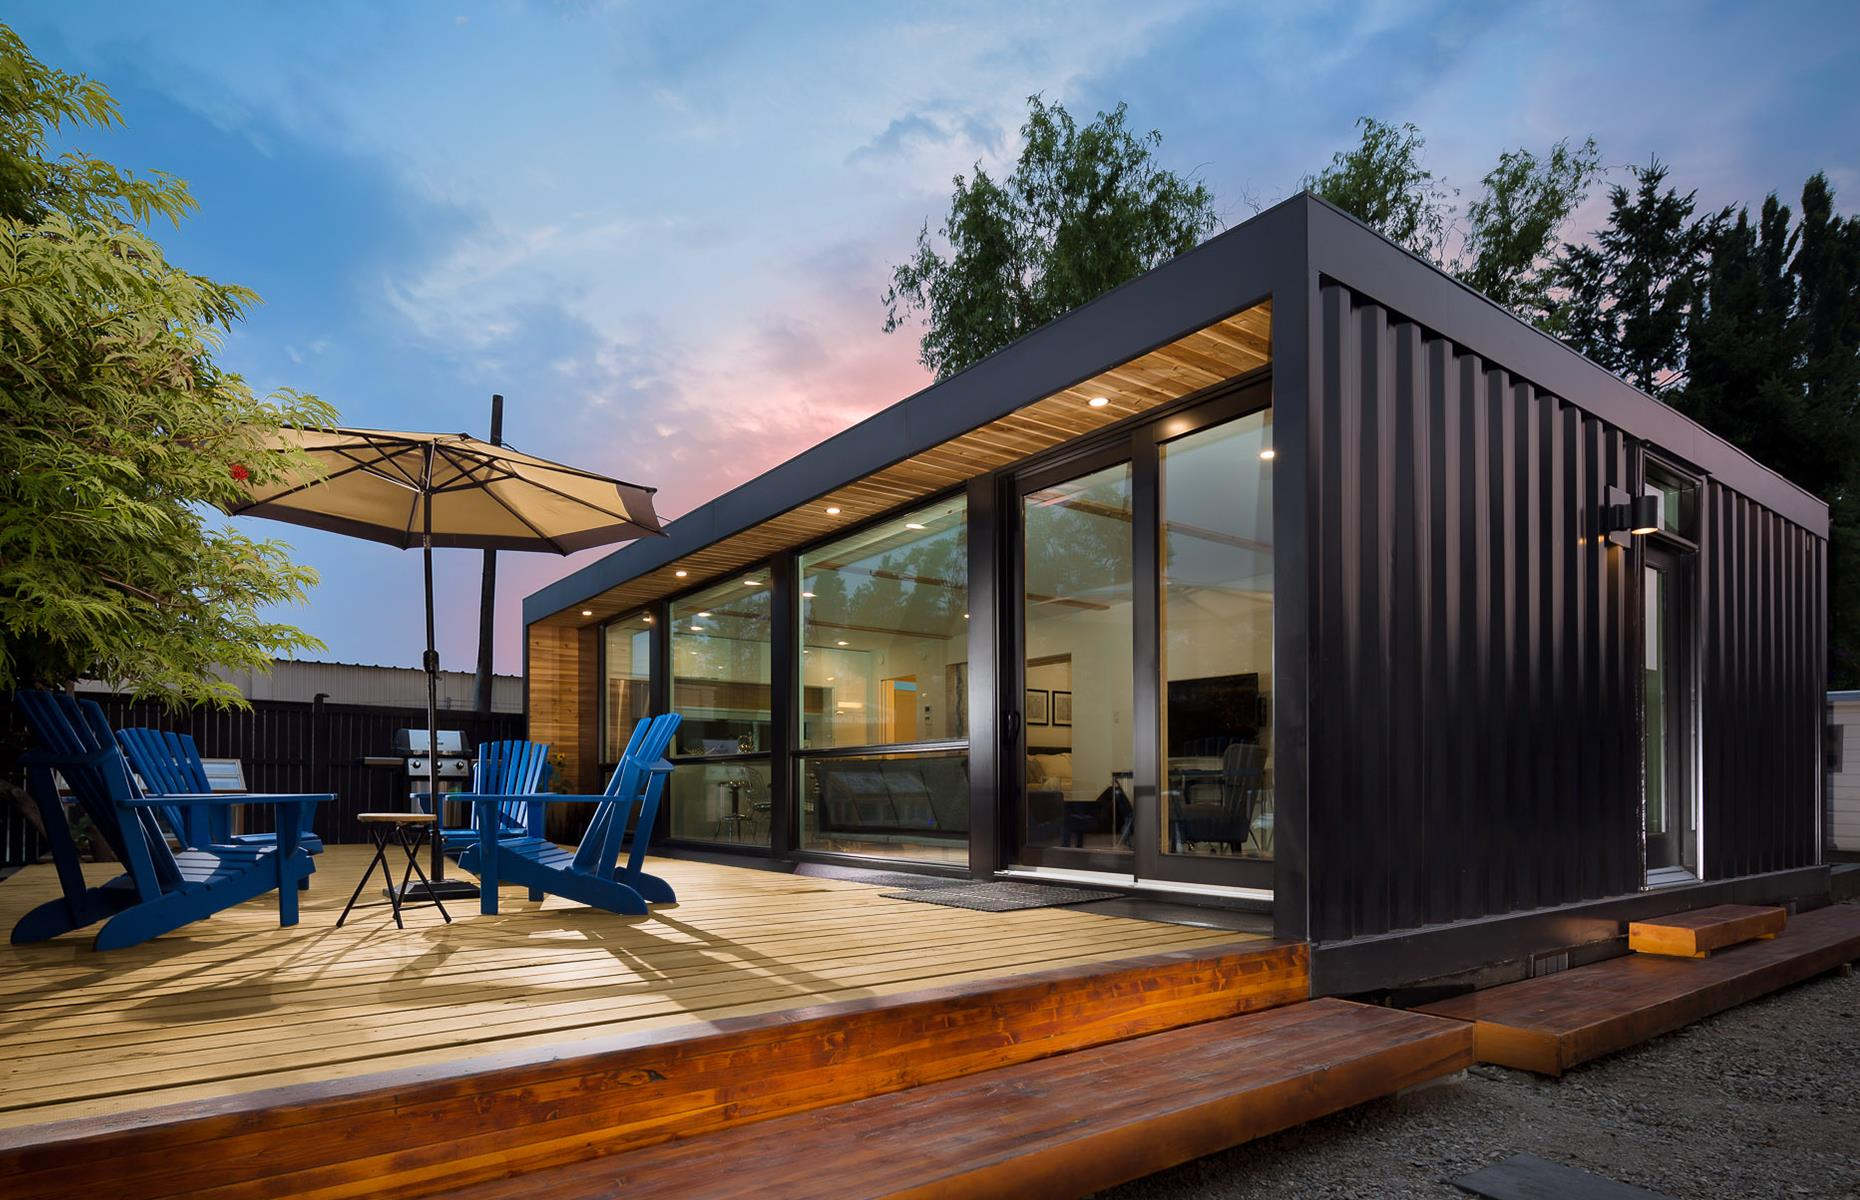 a house built out of containers